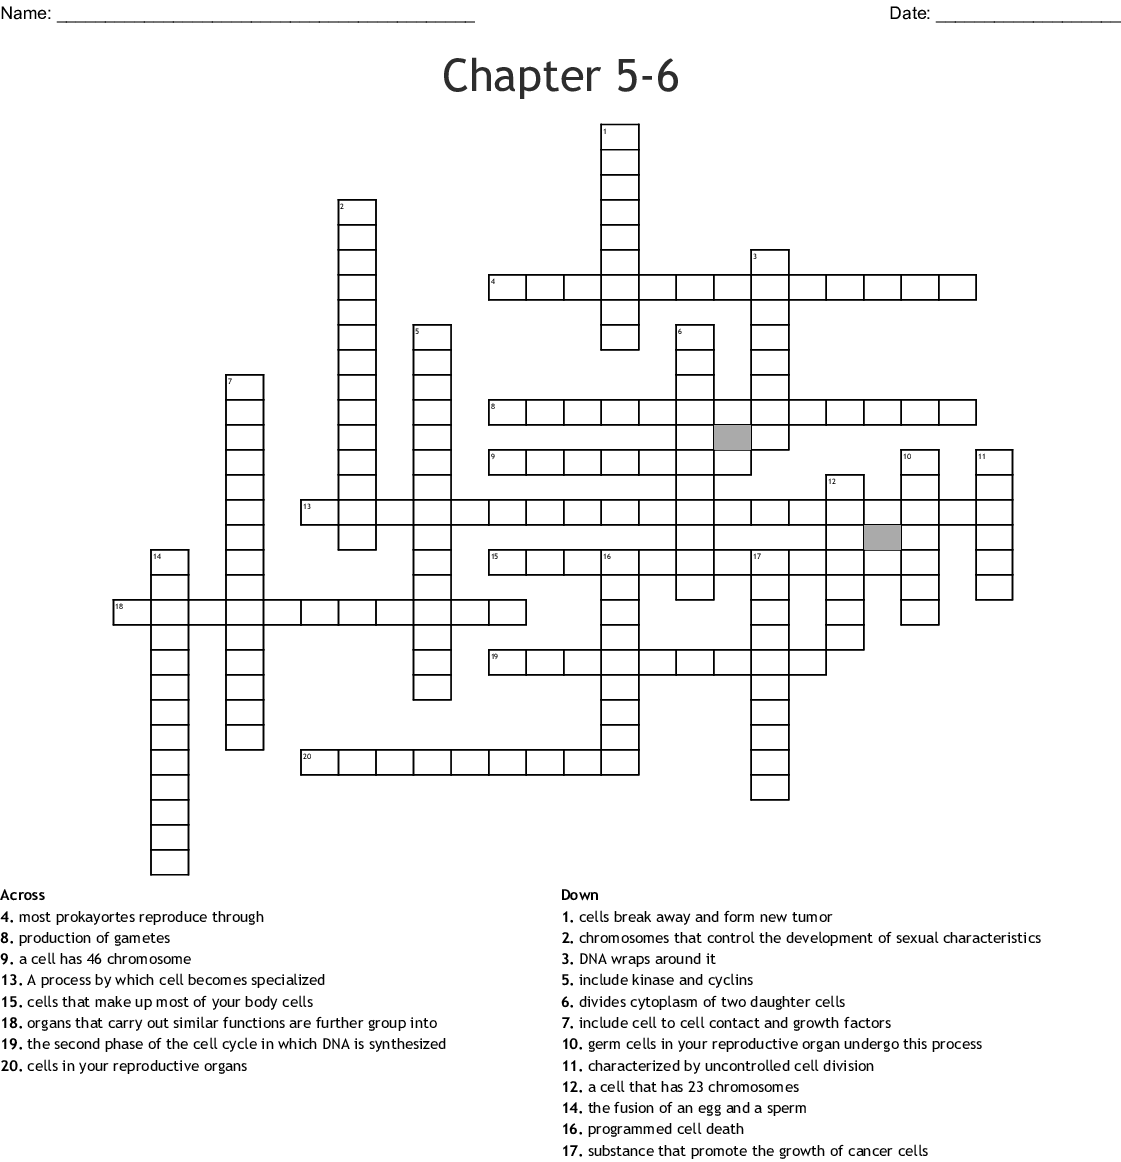 Chapter 5 6 Crossword